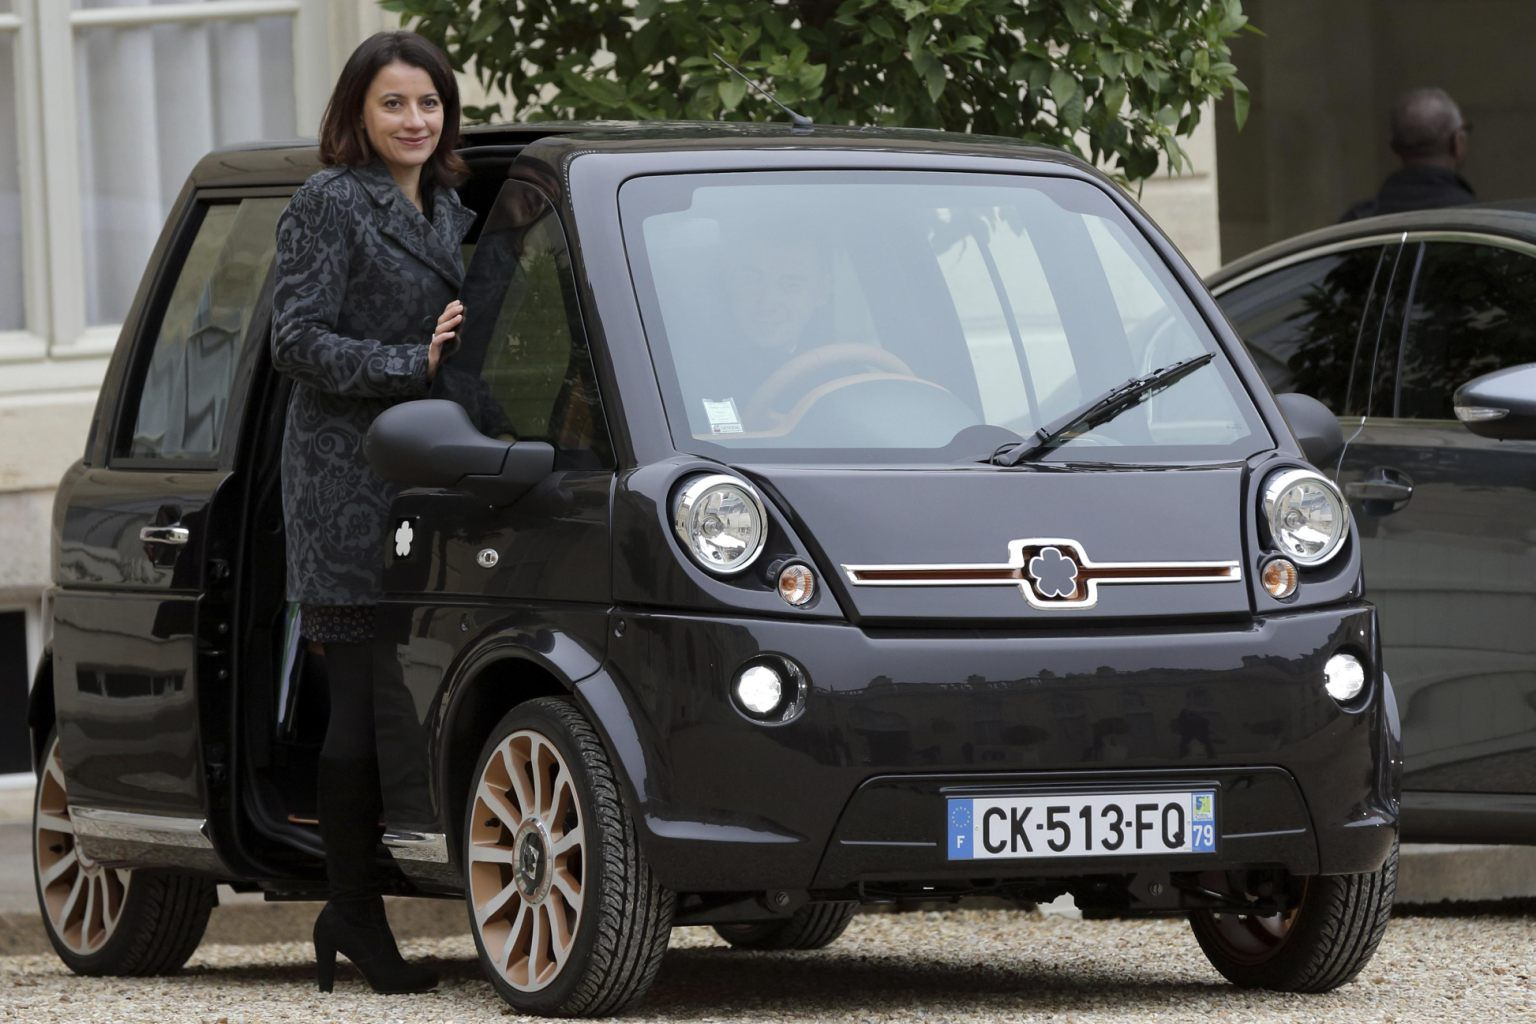 Image detail for -French Housing and Equality of Territories minister Cecile Duflot enters a Mia Electric car as she leaves the weekly cabinet meeting at the Elysee Palace...